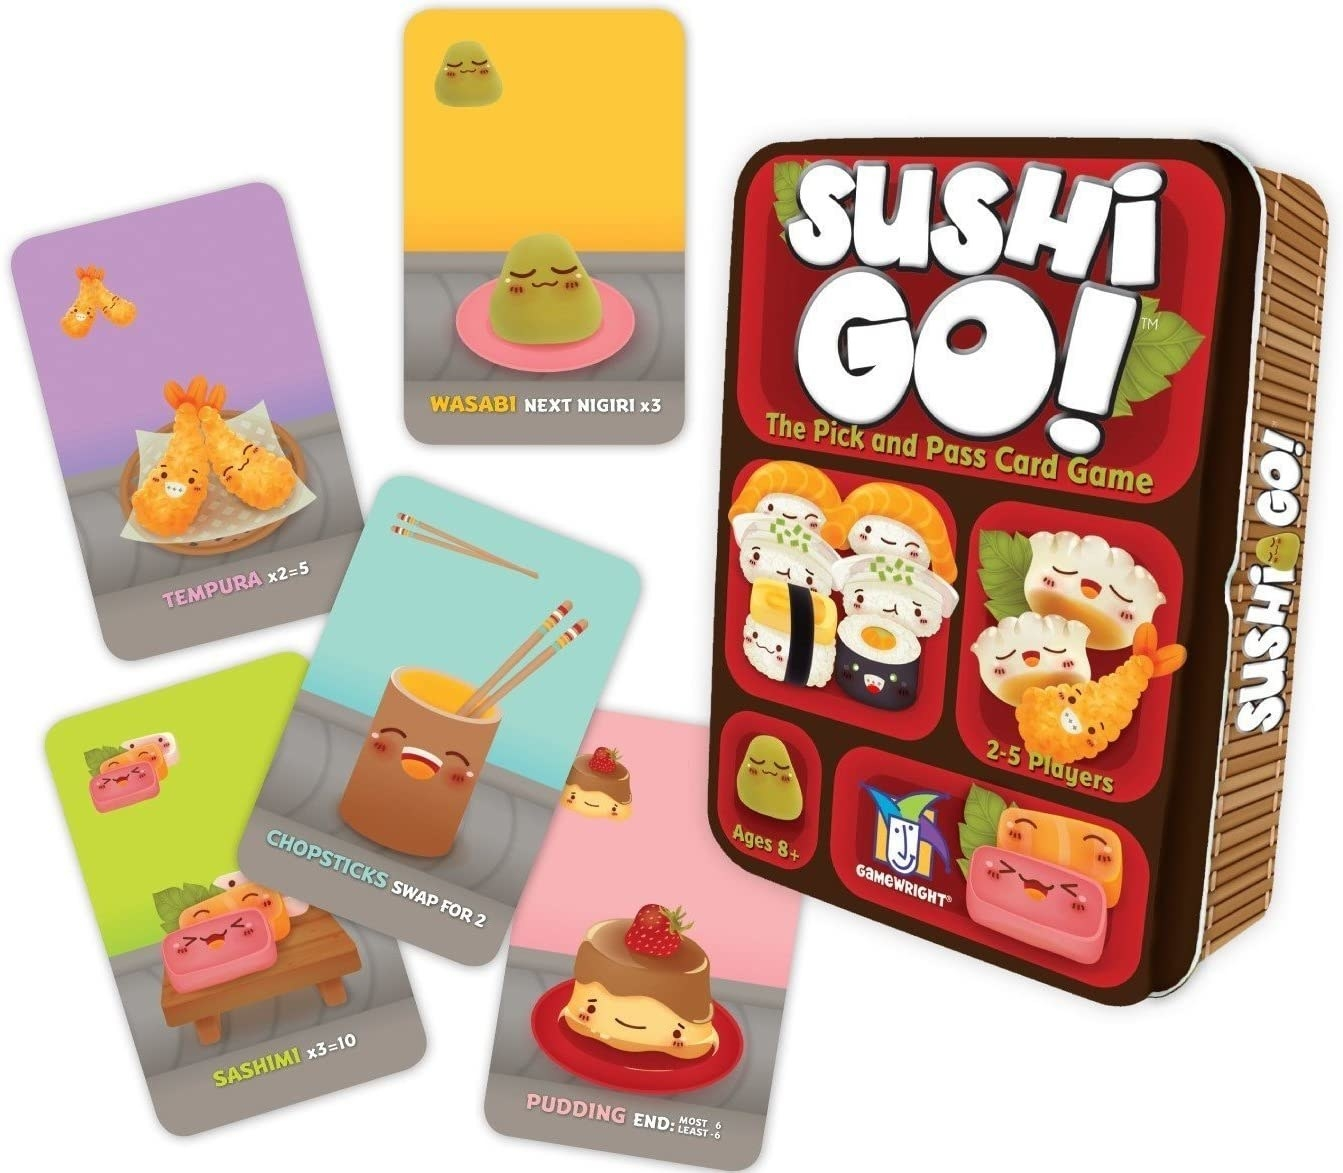 A handful of cards with wasabi, pudding, chopsticks, sashimi, and other foods on them placed beside tin packaging that's in the style of a bento box